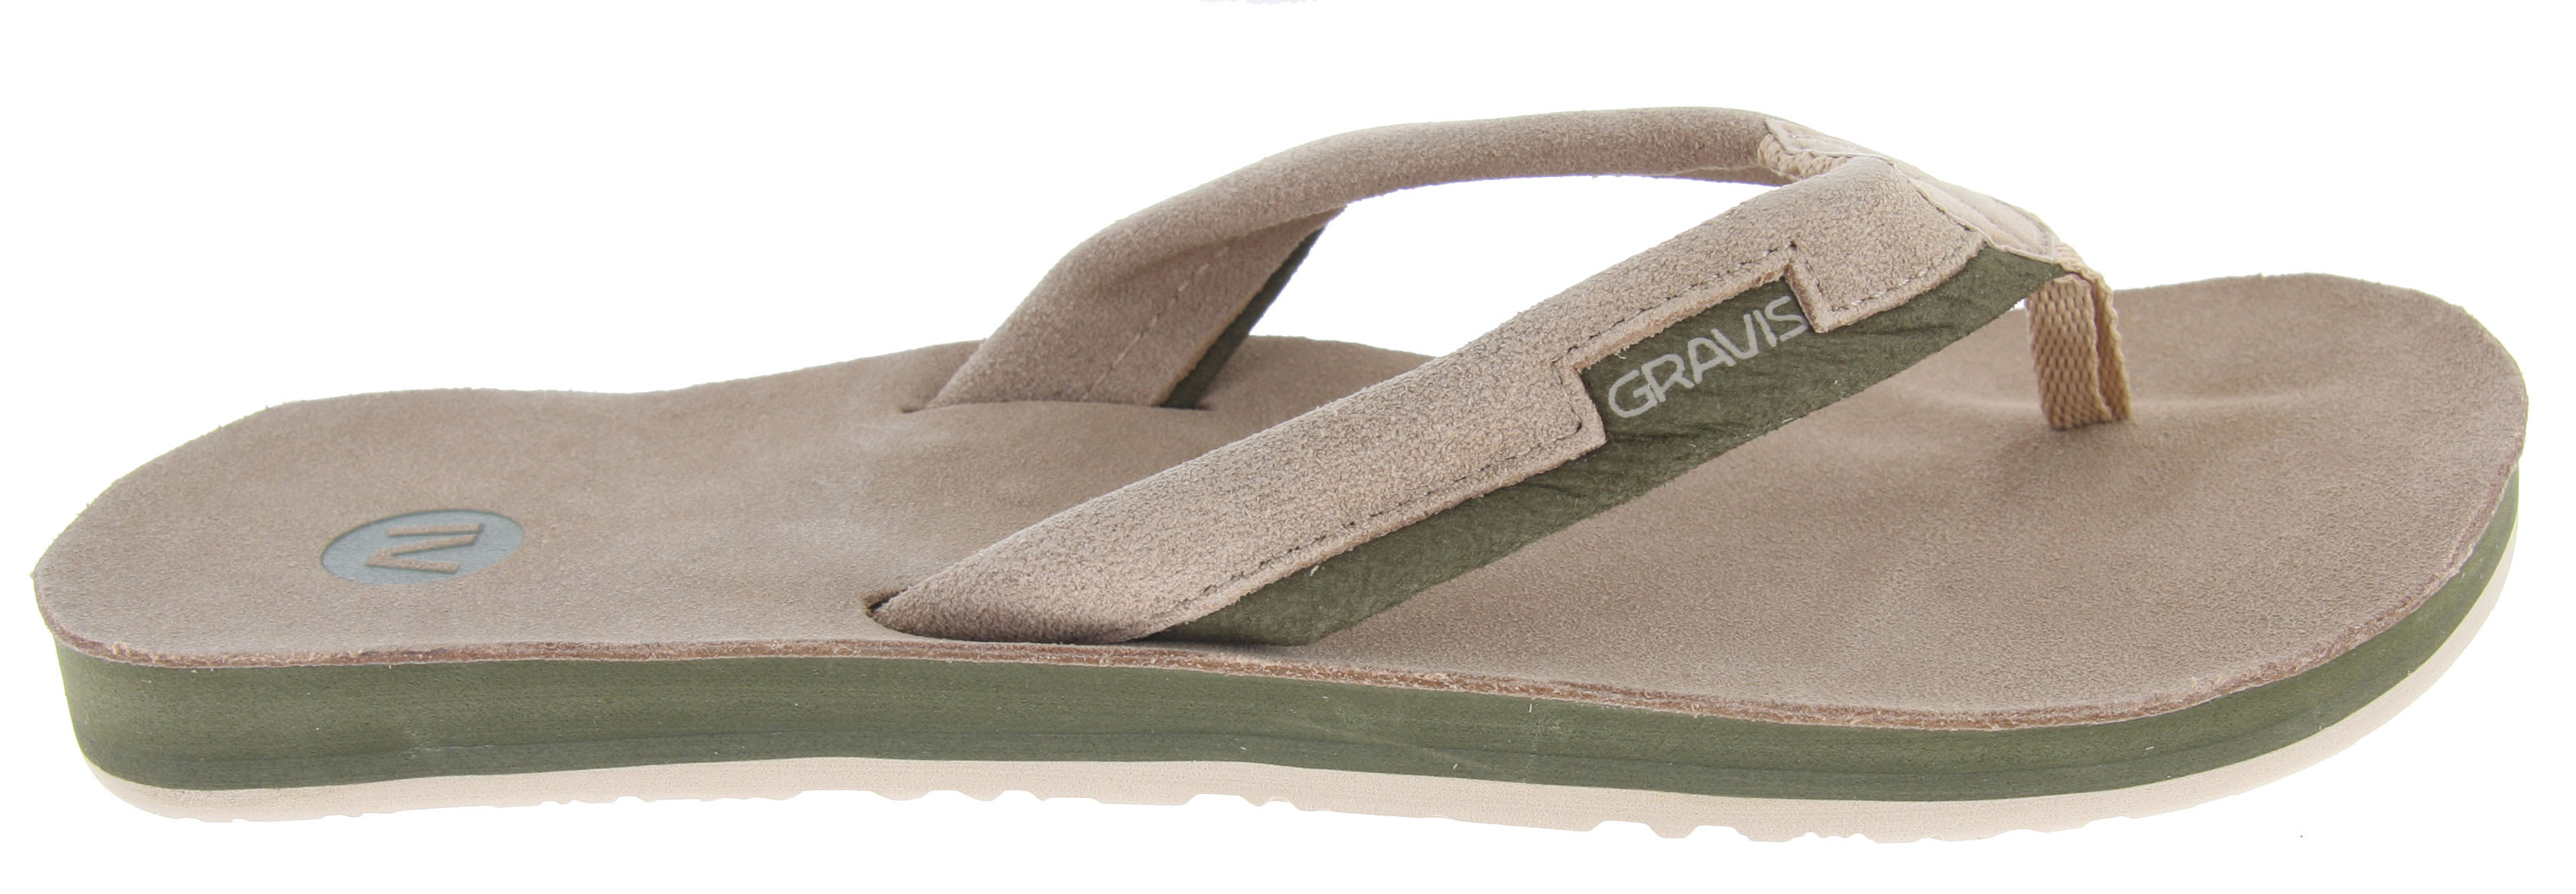 Shop for Gravis Slider Sandals Sand - Women's